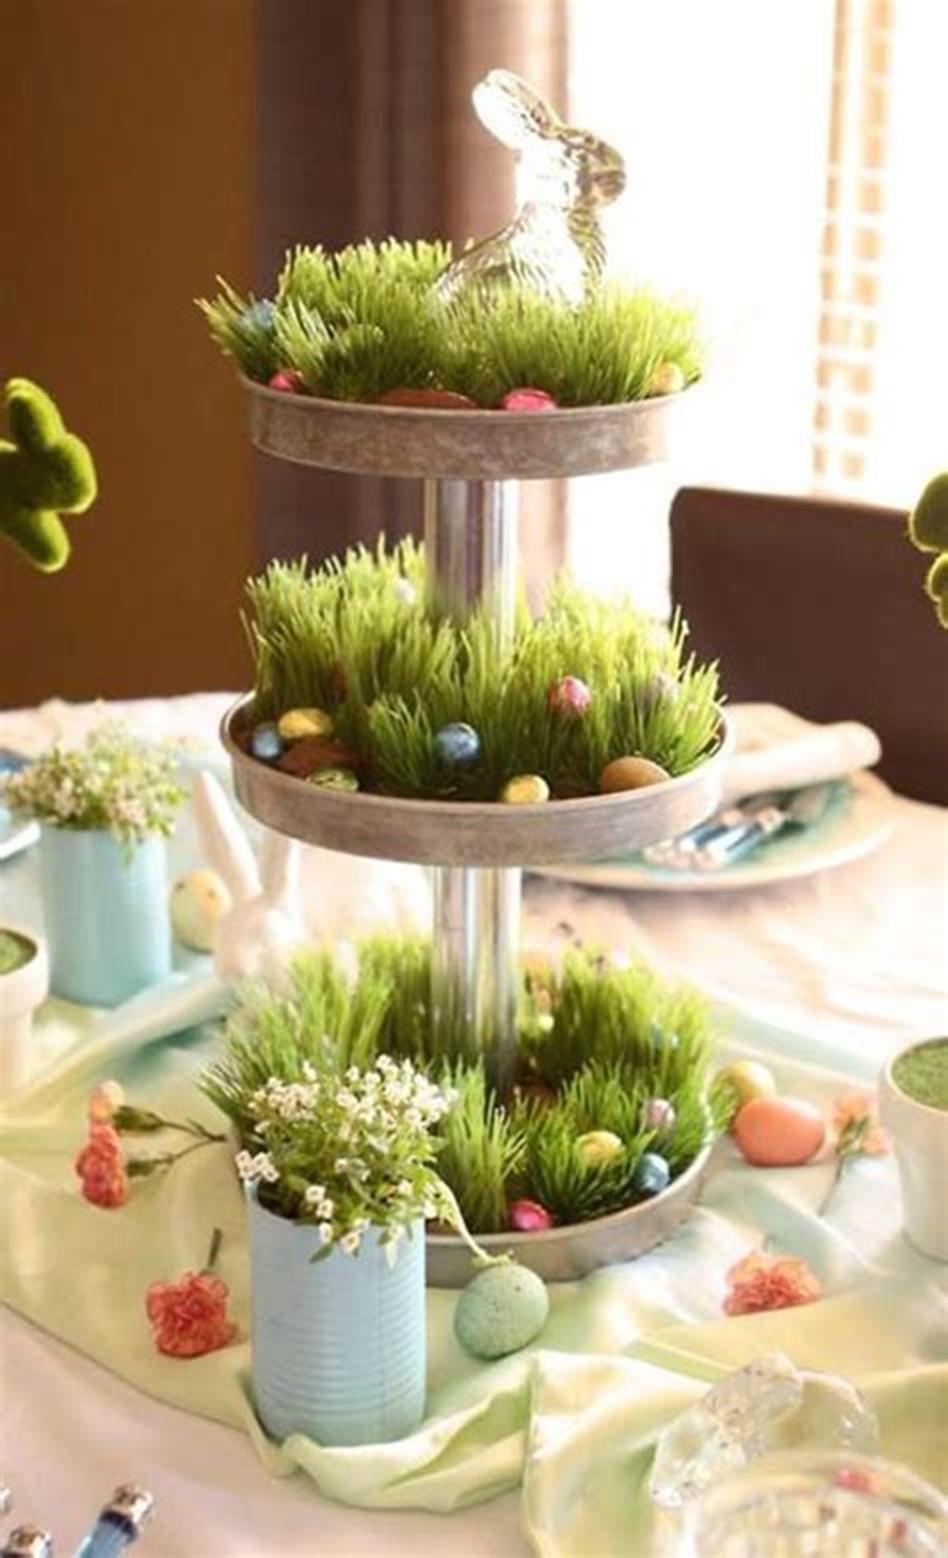 42 DIY Beautiful Vintage Spring Decorations Ideas You Will Love 3